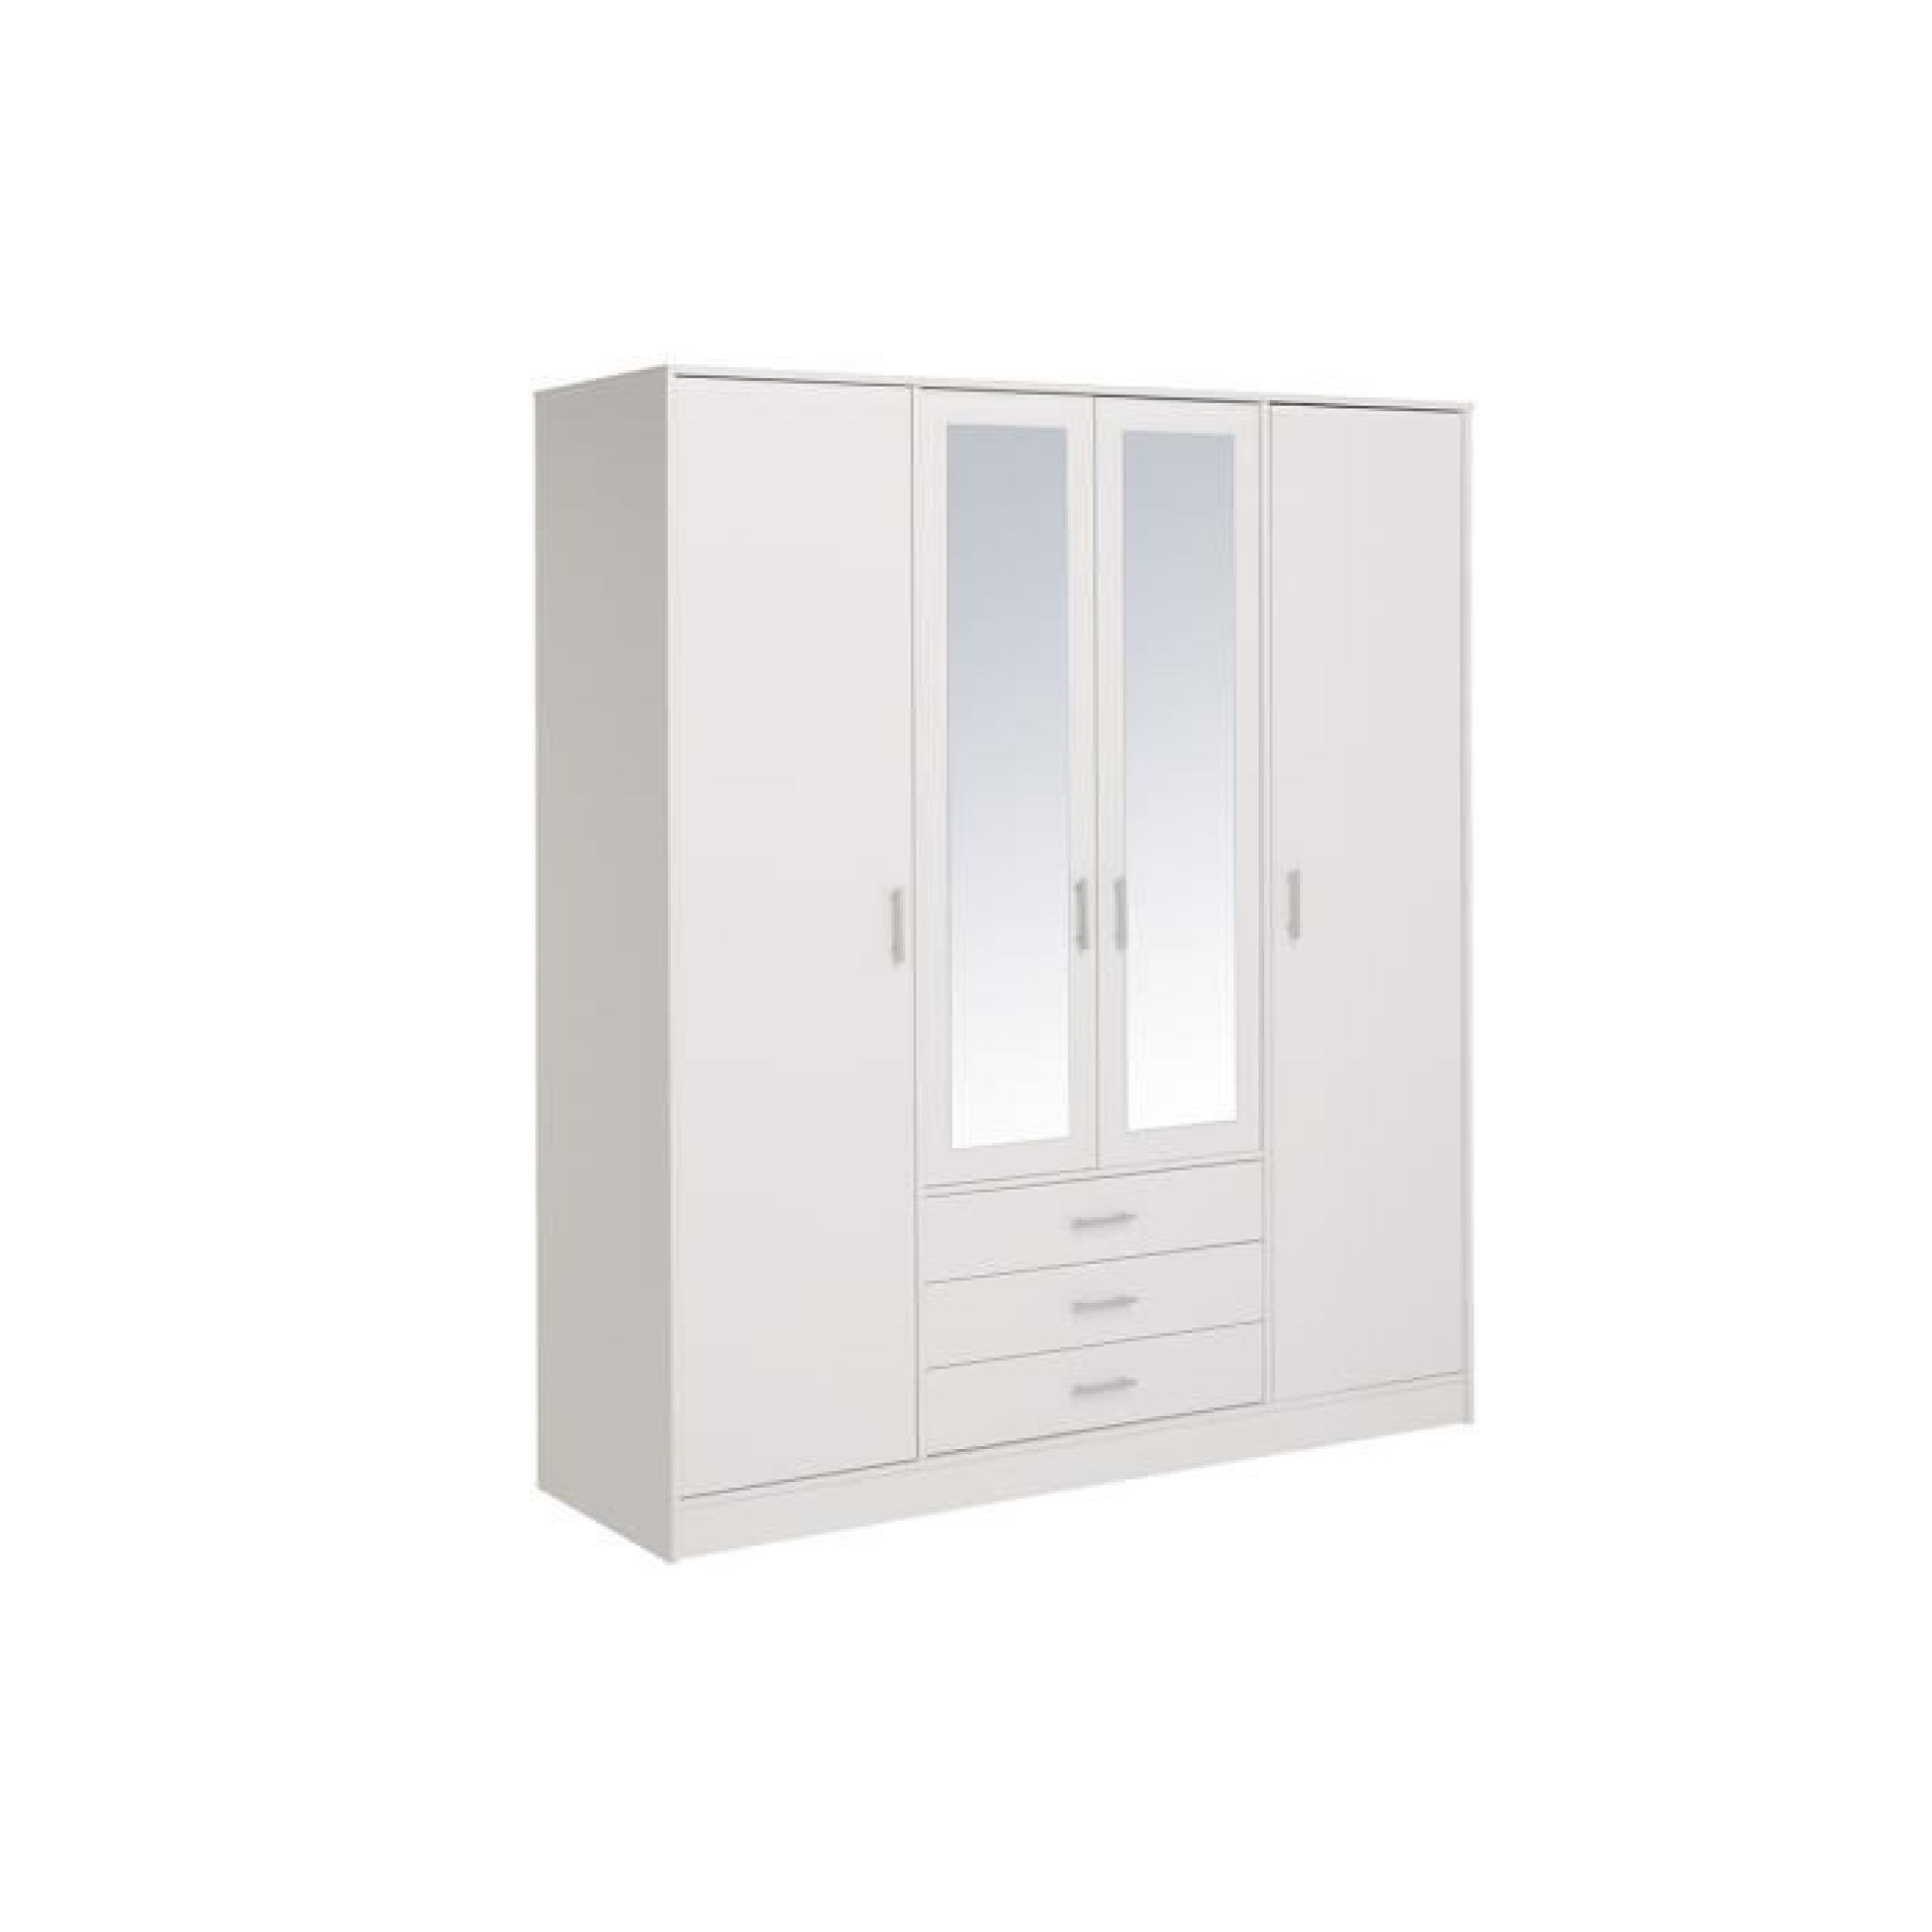 armoire 4 portes 3 tiroirs blanc eternal achat vente armoire de chambre pas cher couleur. Black Bedroom Furniture Sets. Home Design Ideas